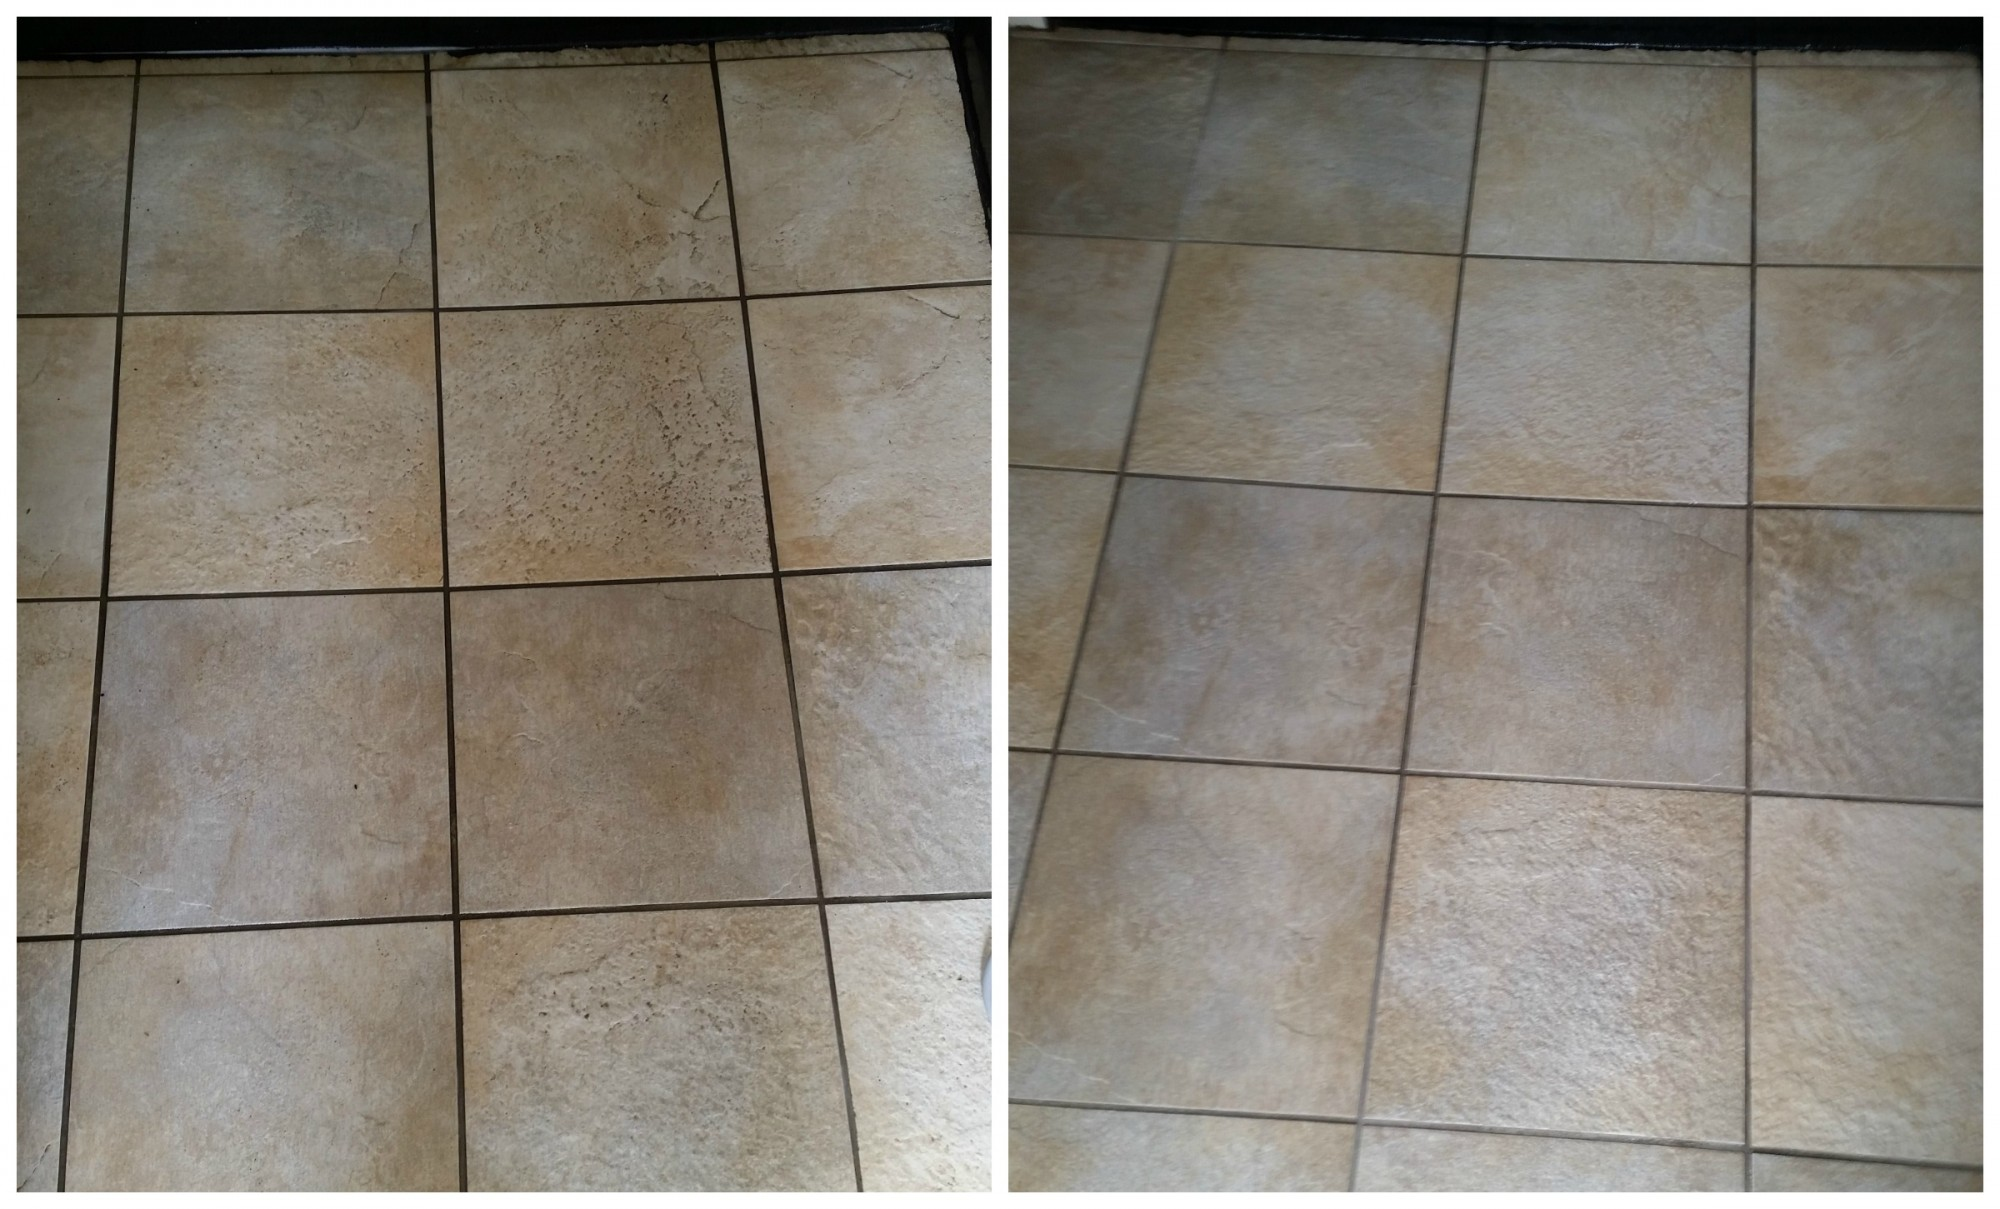 Tile Floor Cleaning In Bedfordshire Five Star Furnishing Care